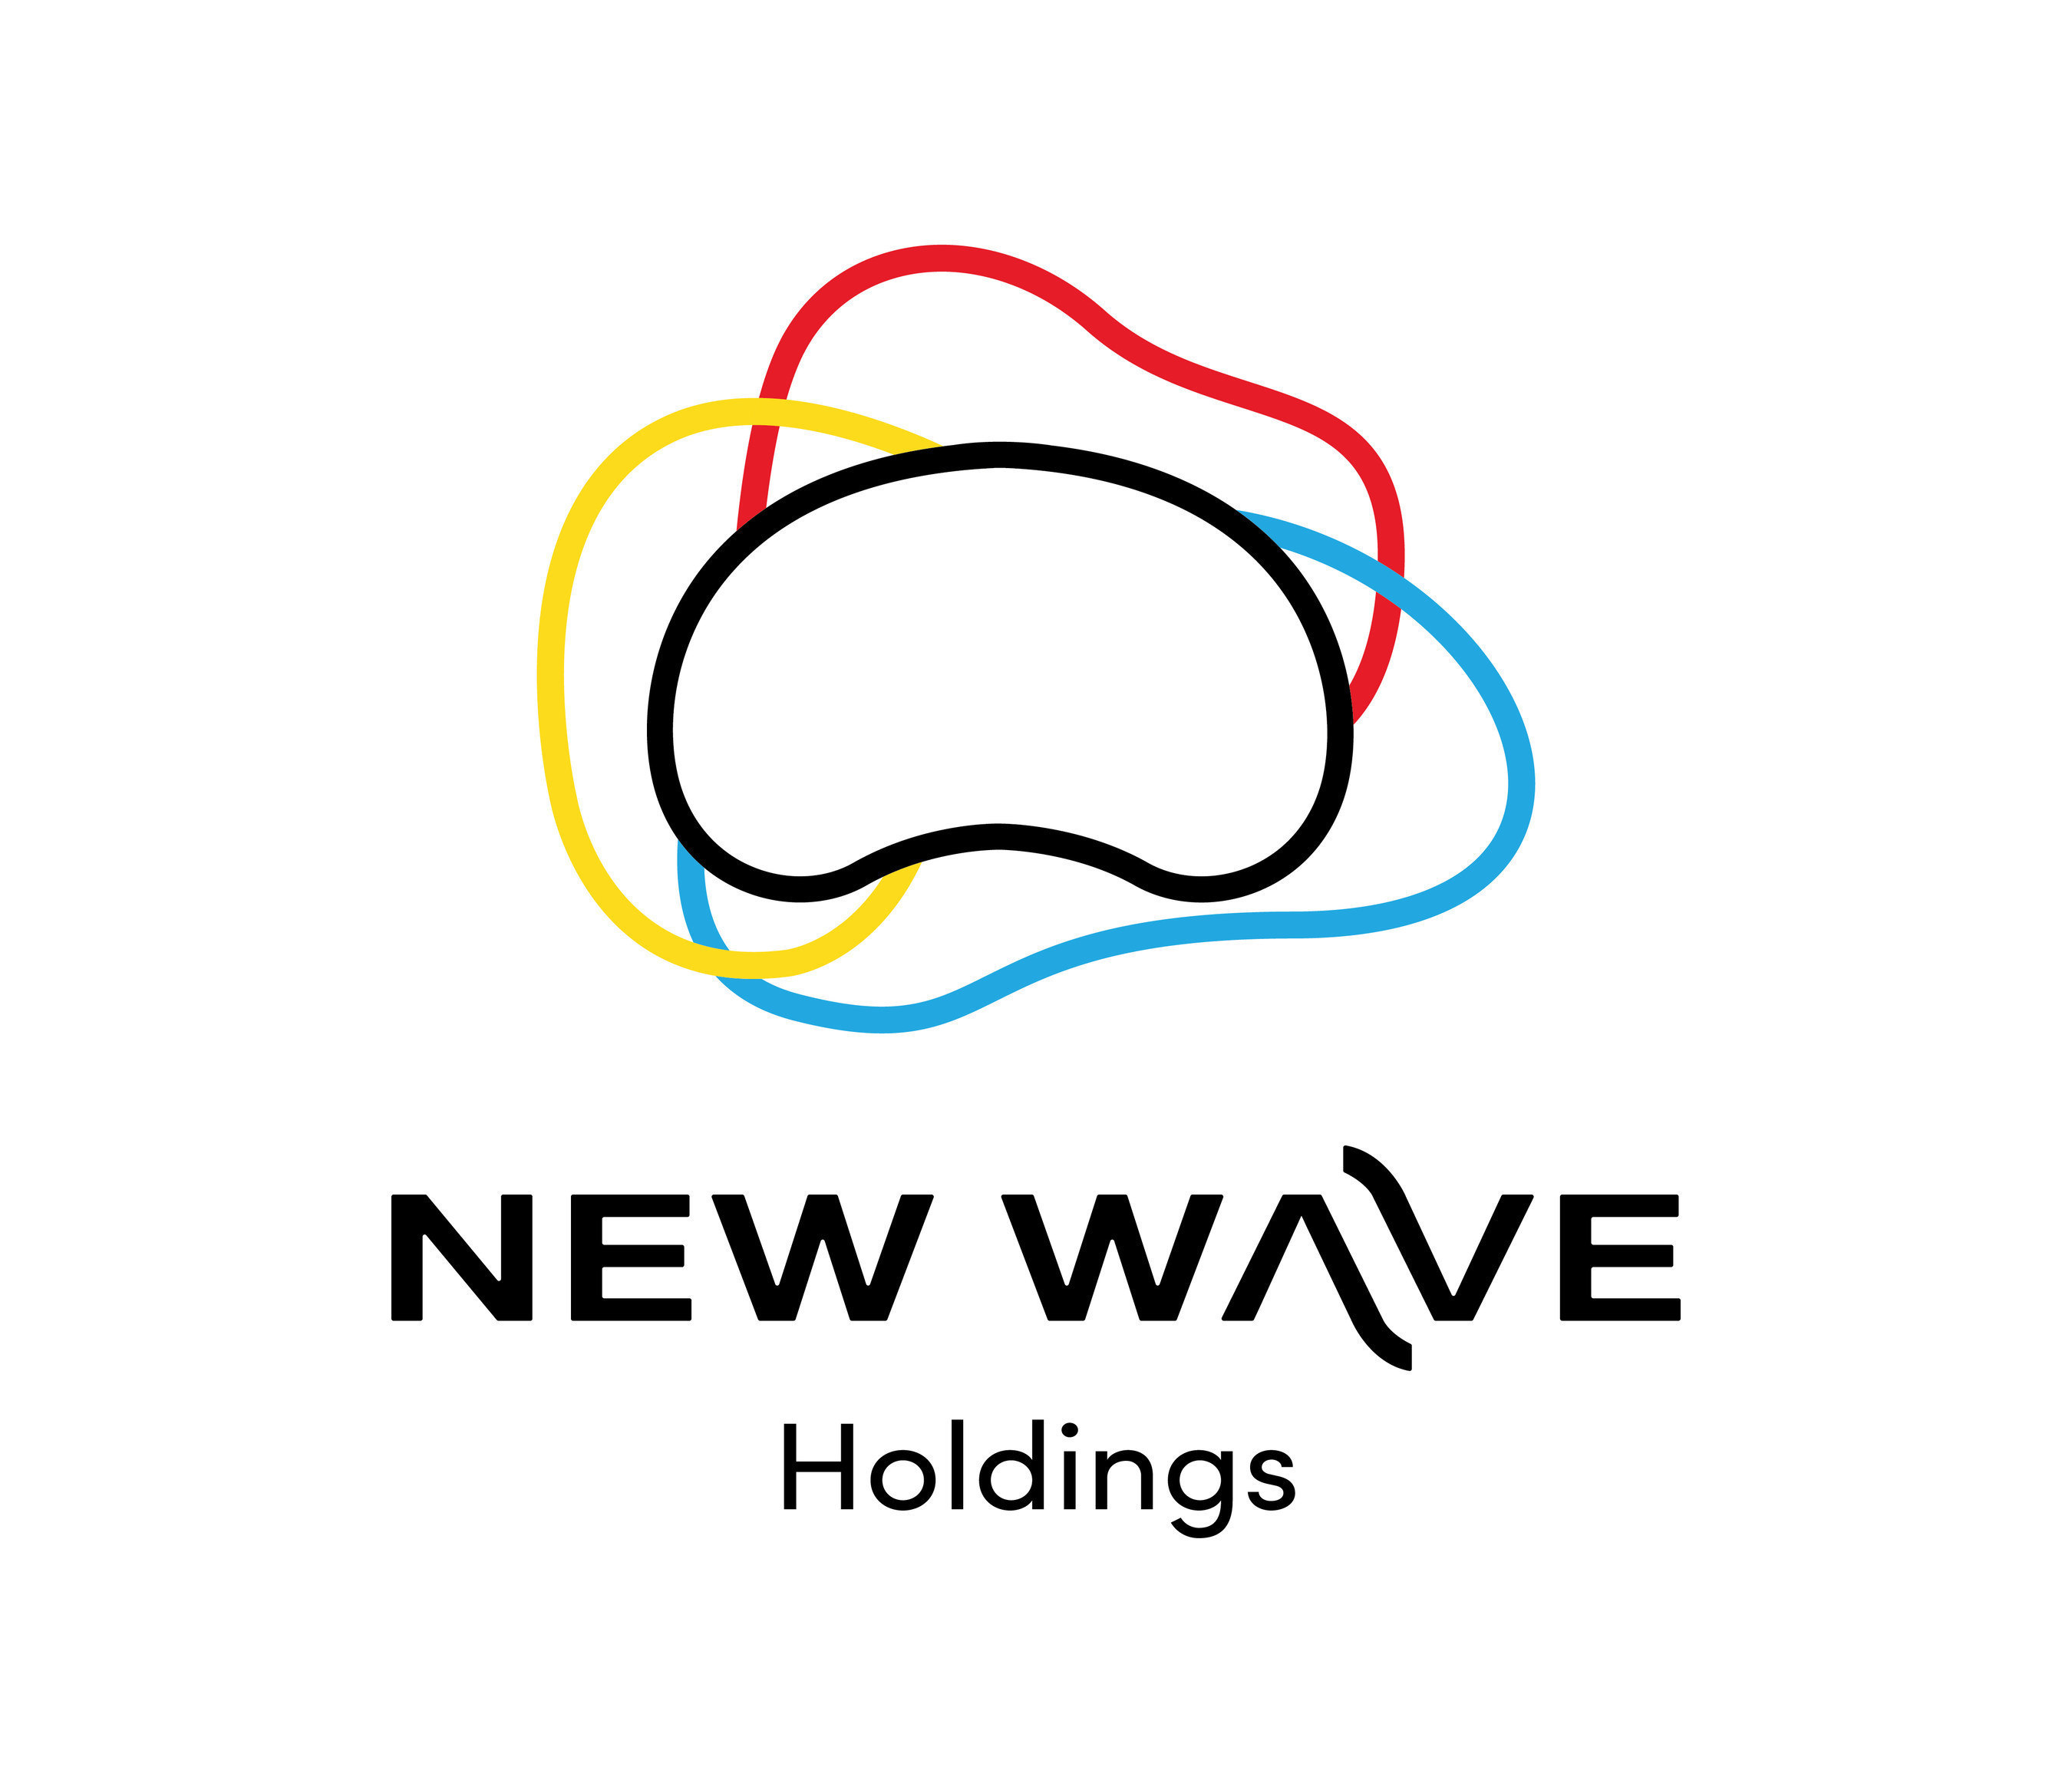 what channel is bet on newwave